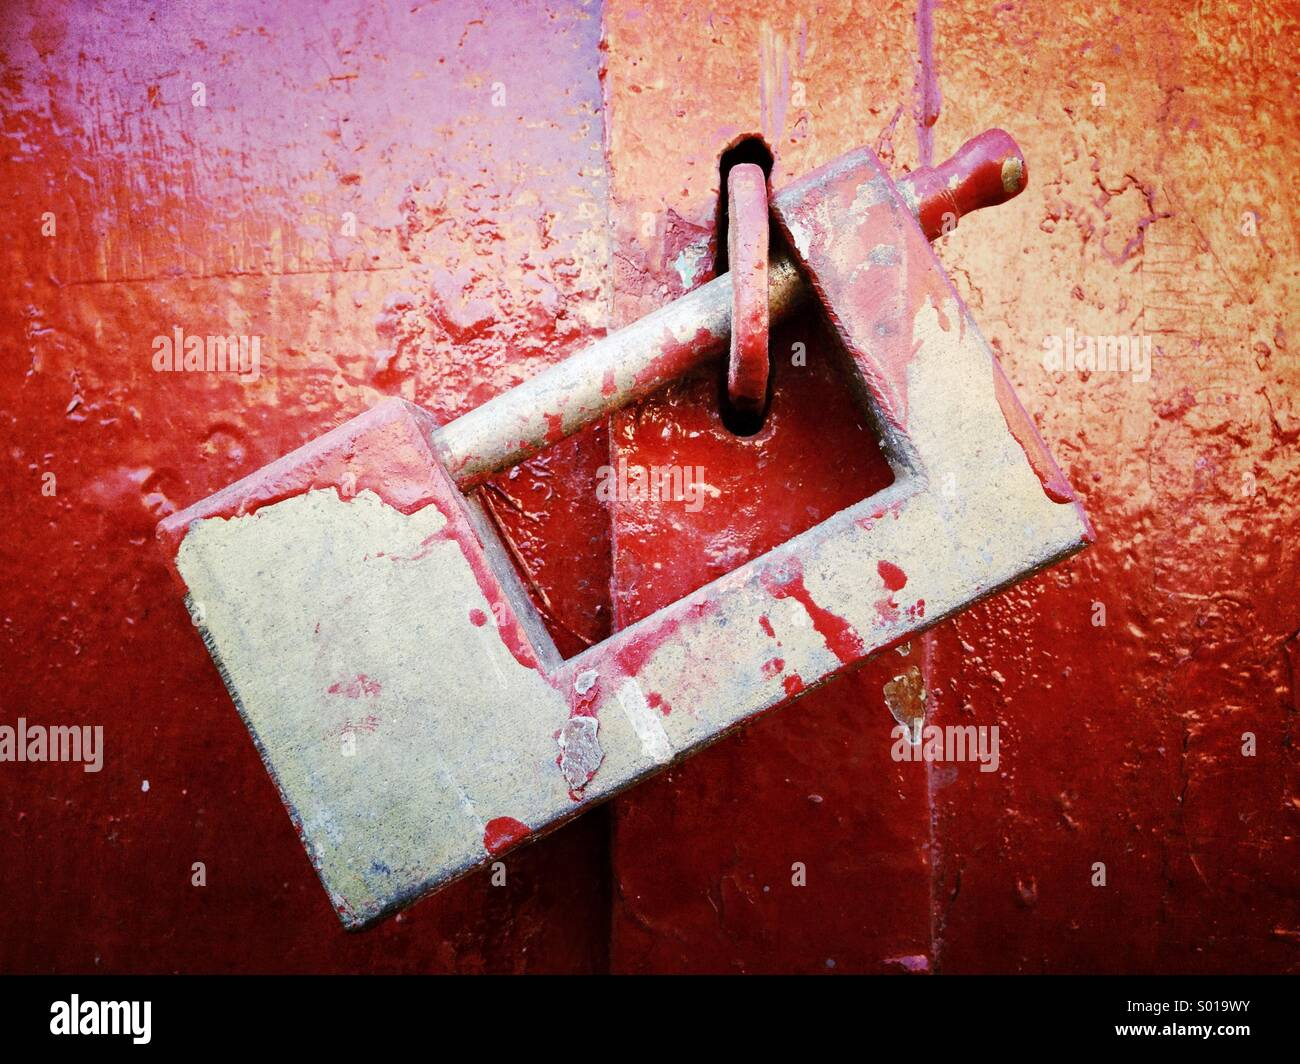 Lock et de la peinture rouge Photo Stock